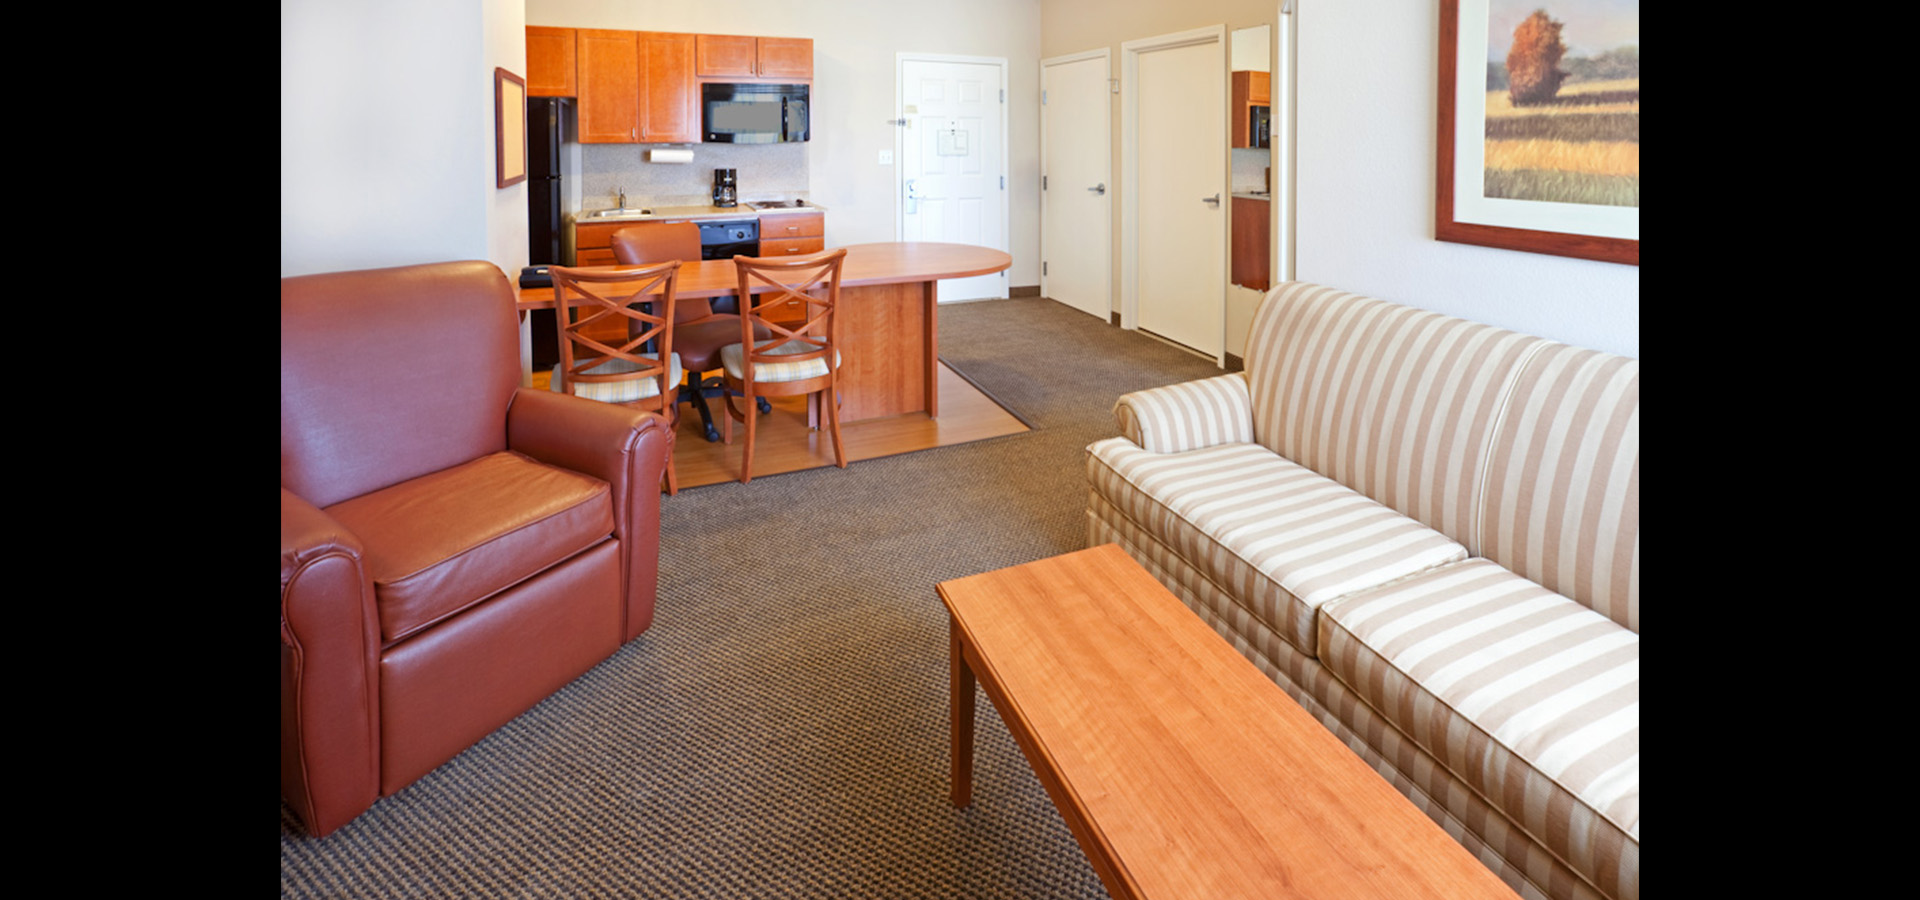 Candlewood Suites DFW South_04